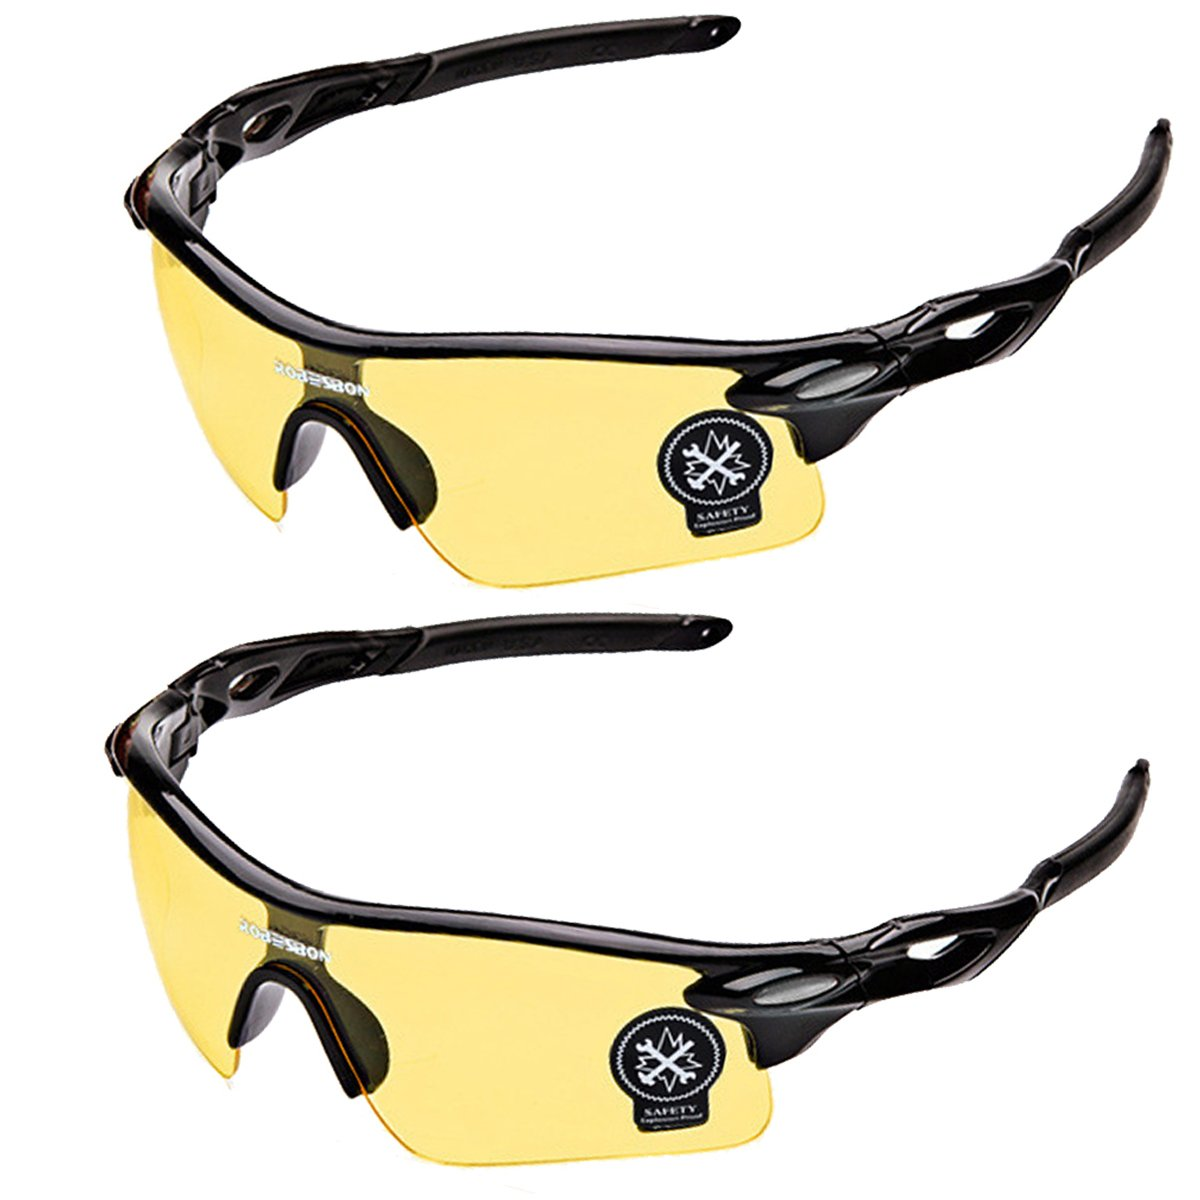 Sports Sunglasses Glare UV400 Protection Polarized HD Night Vision Glasses Motorcycle Riding Glasses (2 Pairs) (Yellow X 2)